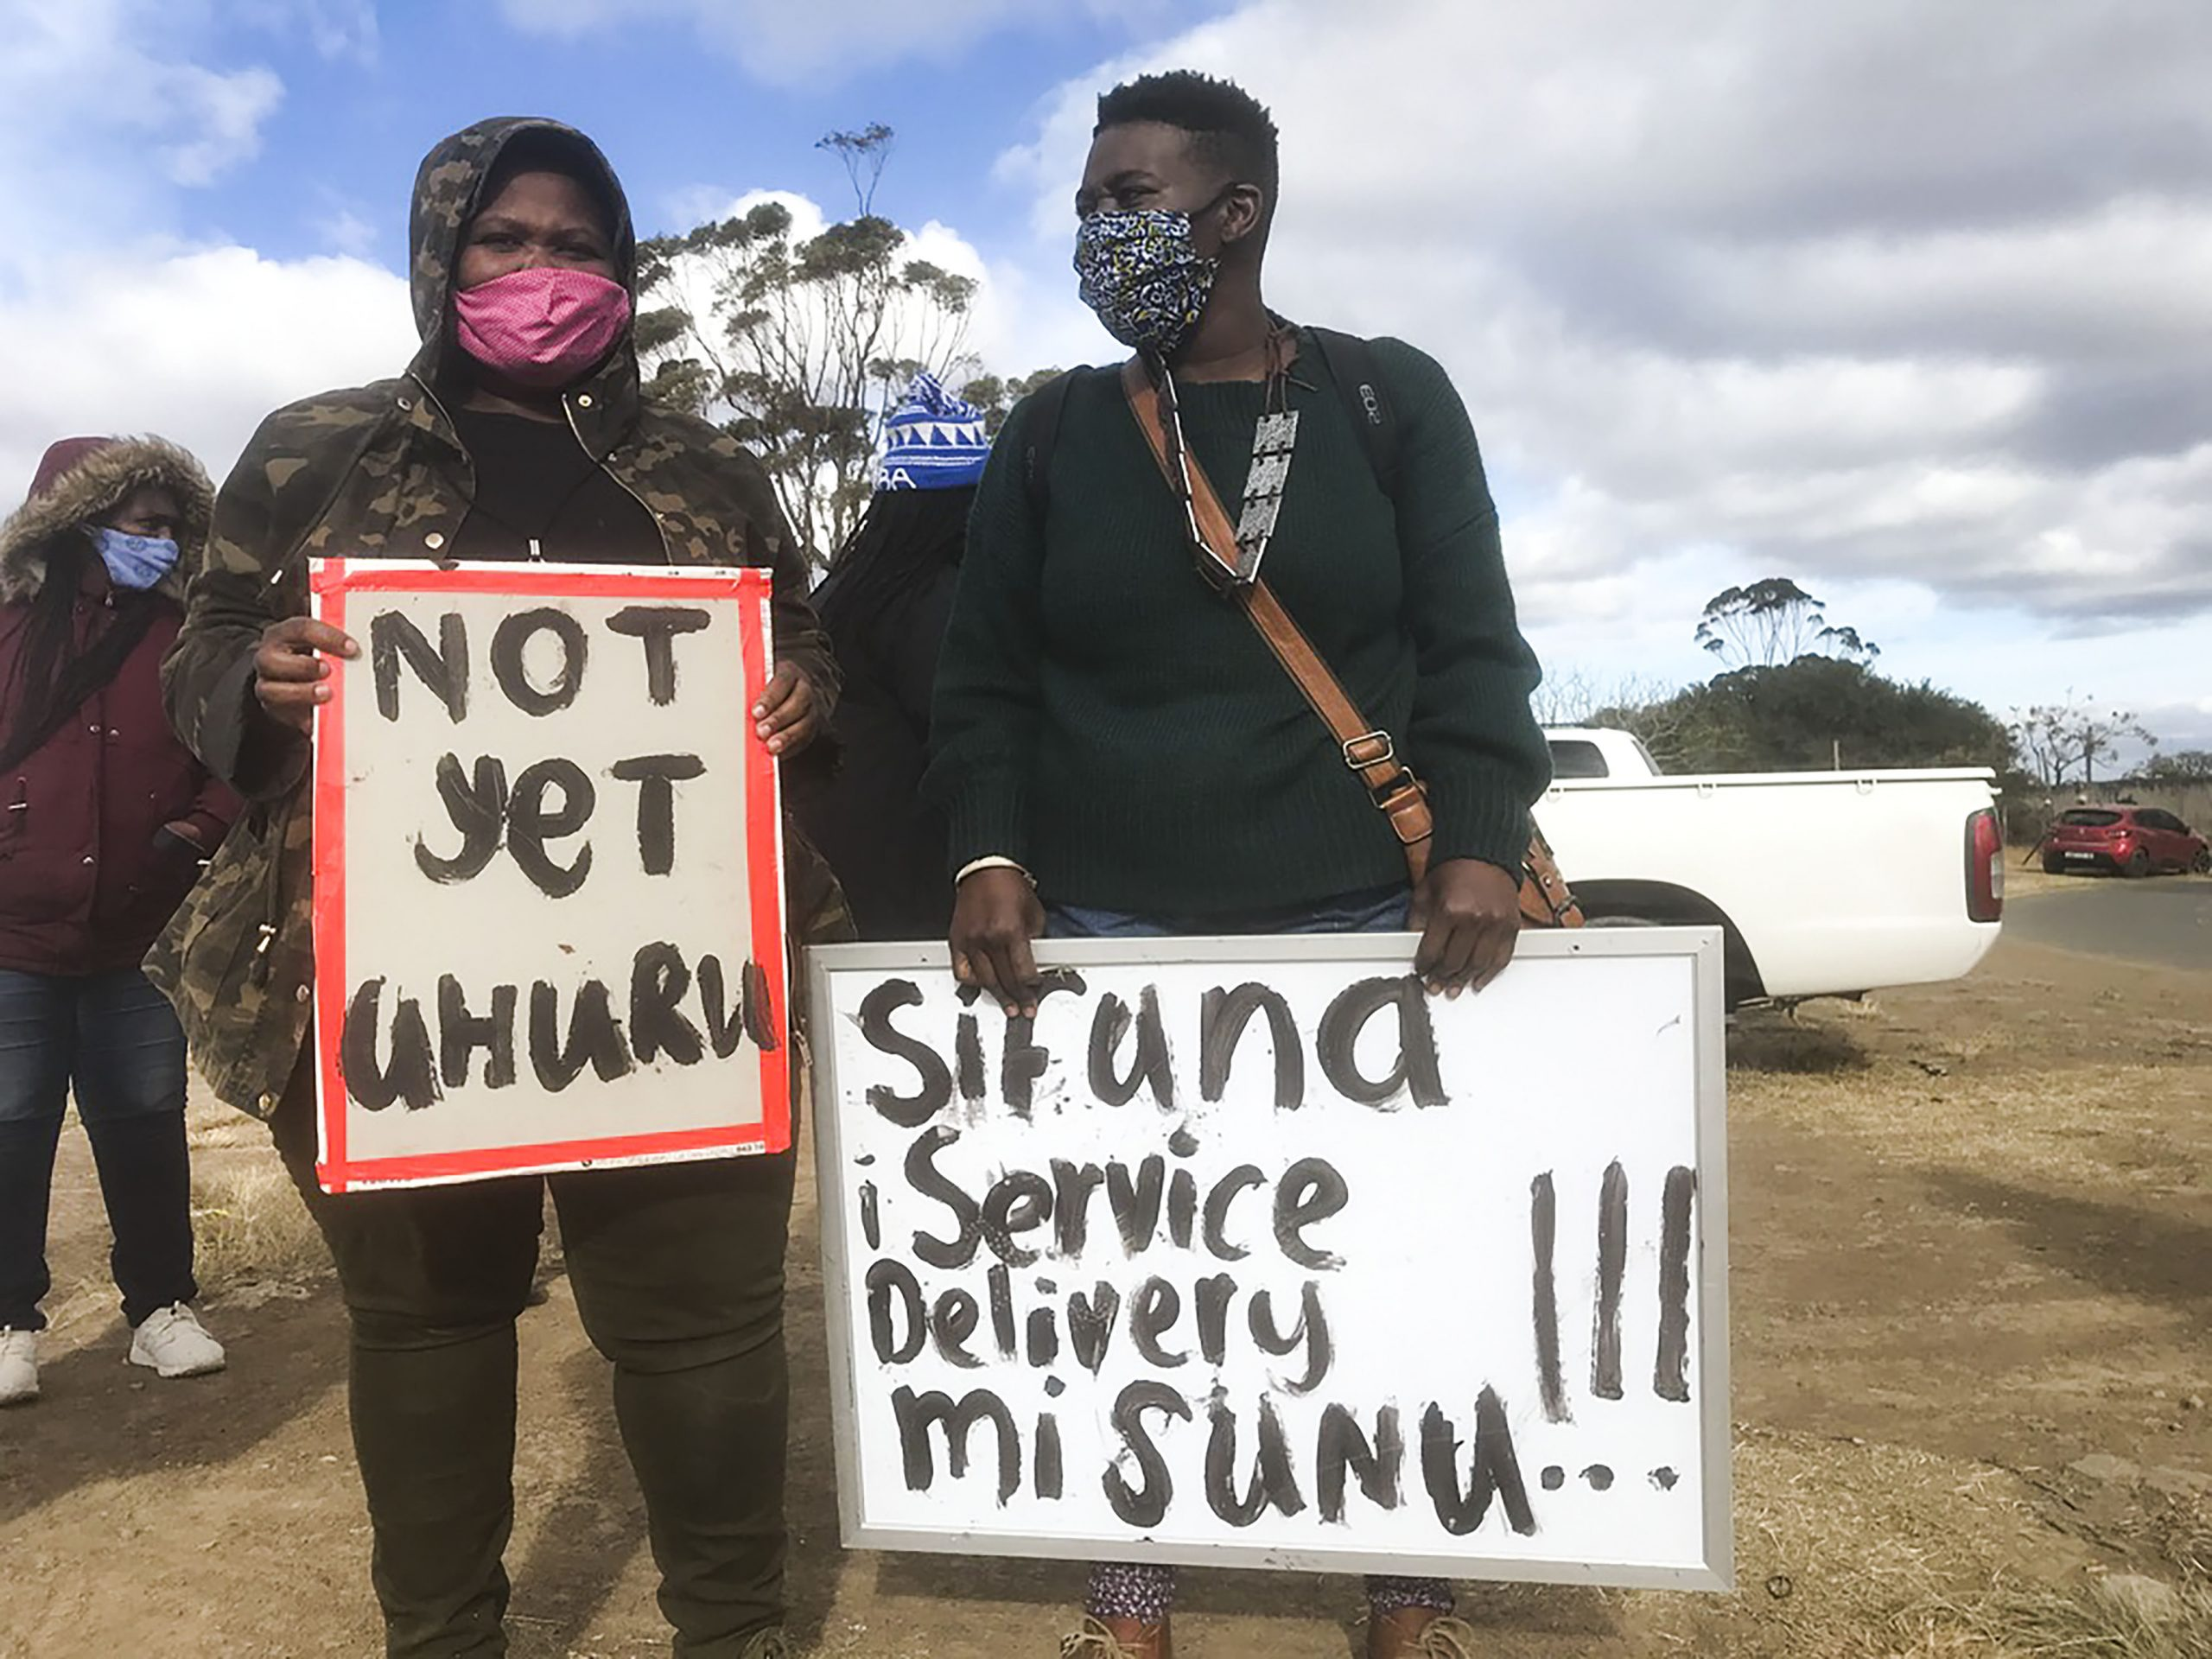 7 June 2020: From left, the police arrested protesters Phumeza Macwili and Samkela Stamper.